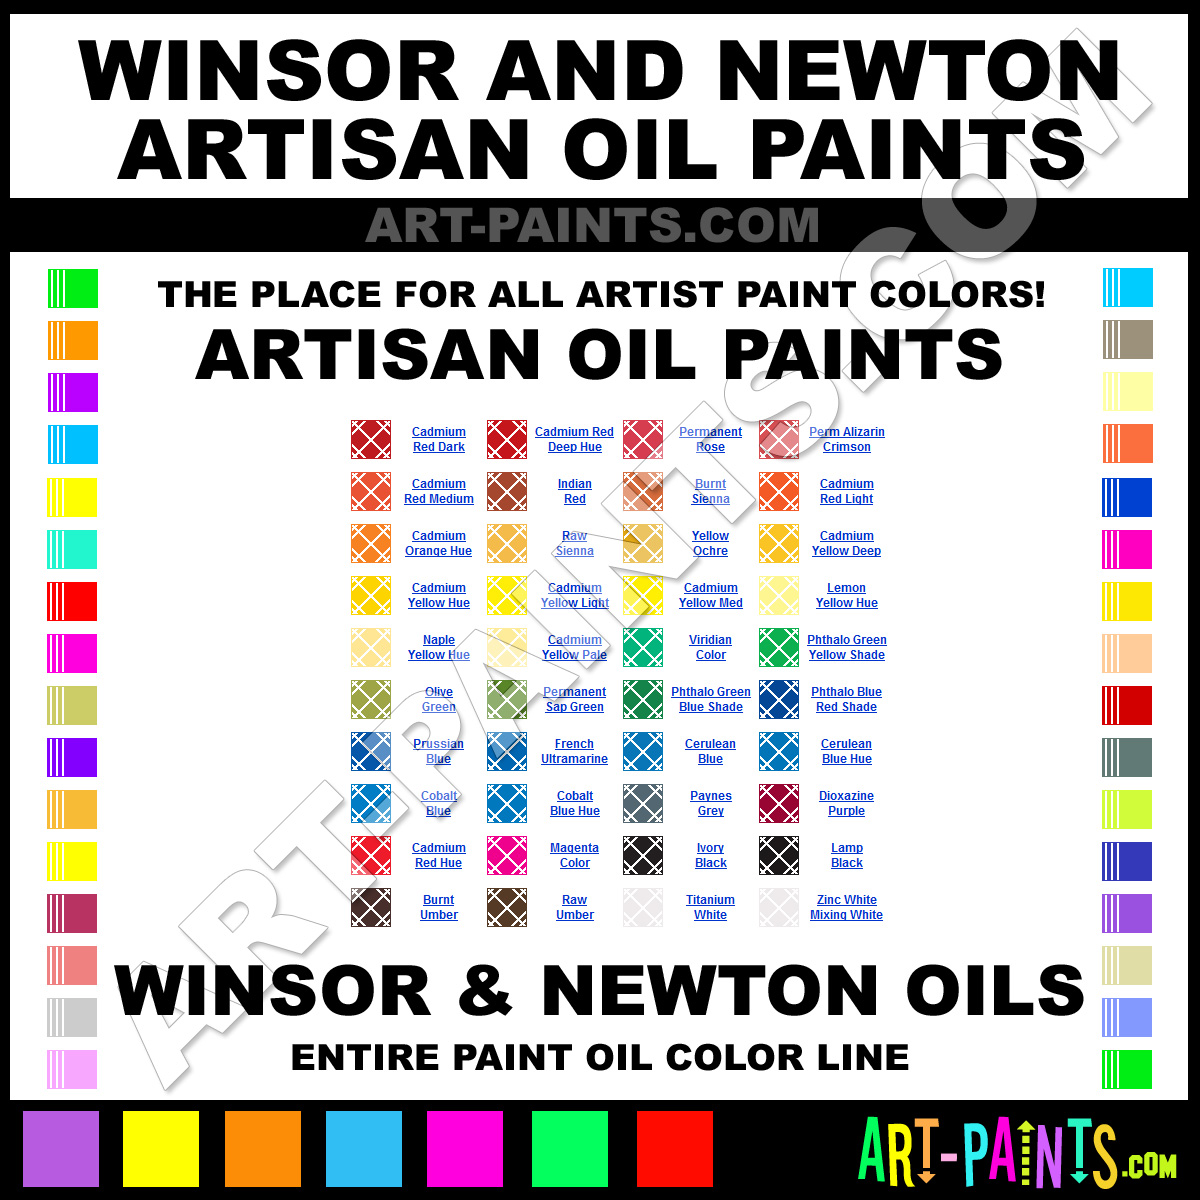 Winsor And Newton Artisan Oil Paint Colors Winsor And